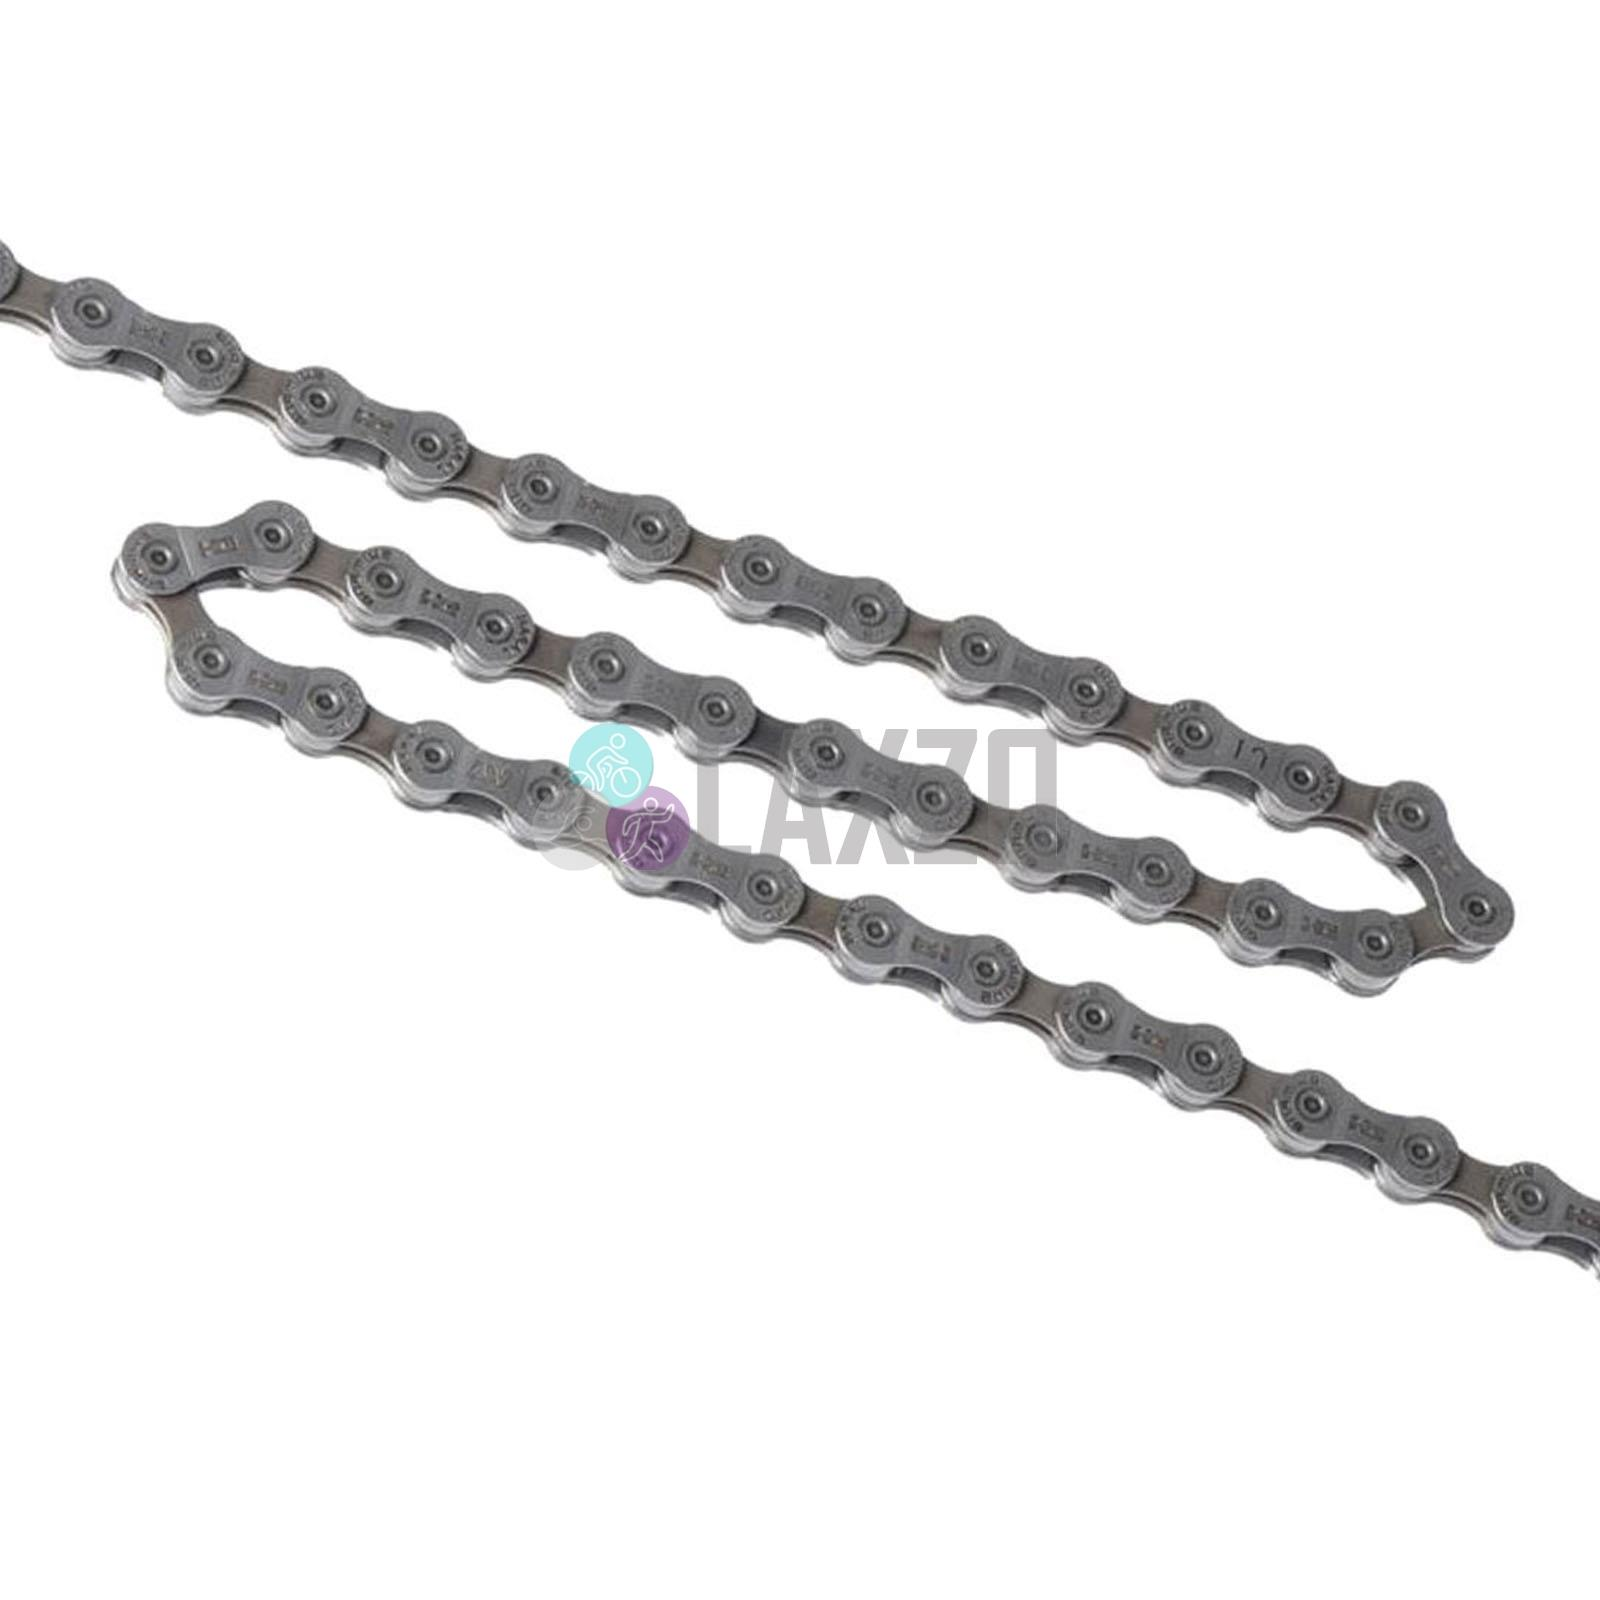 Shimano Chain Cn Hg53 9 Speed 114 Links Deore Tiagra